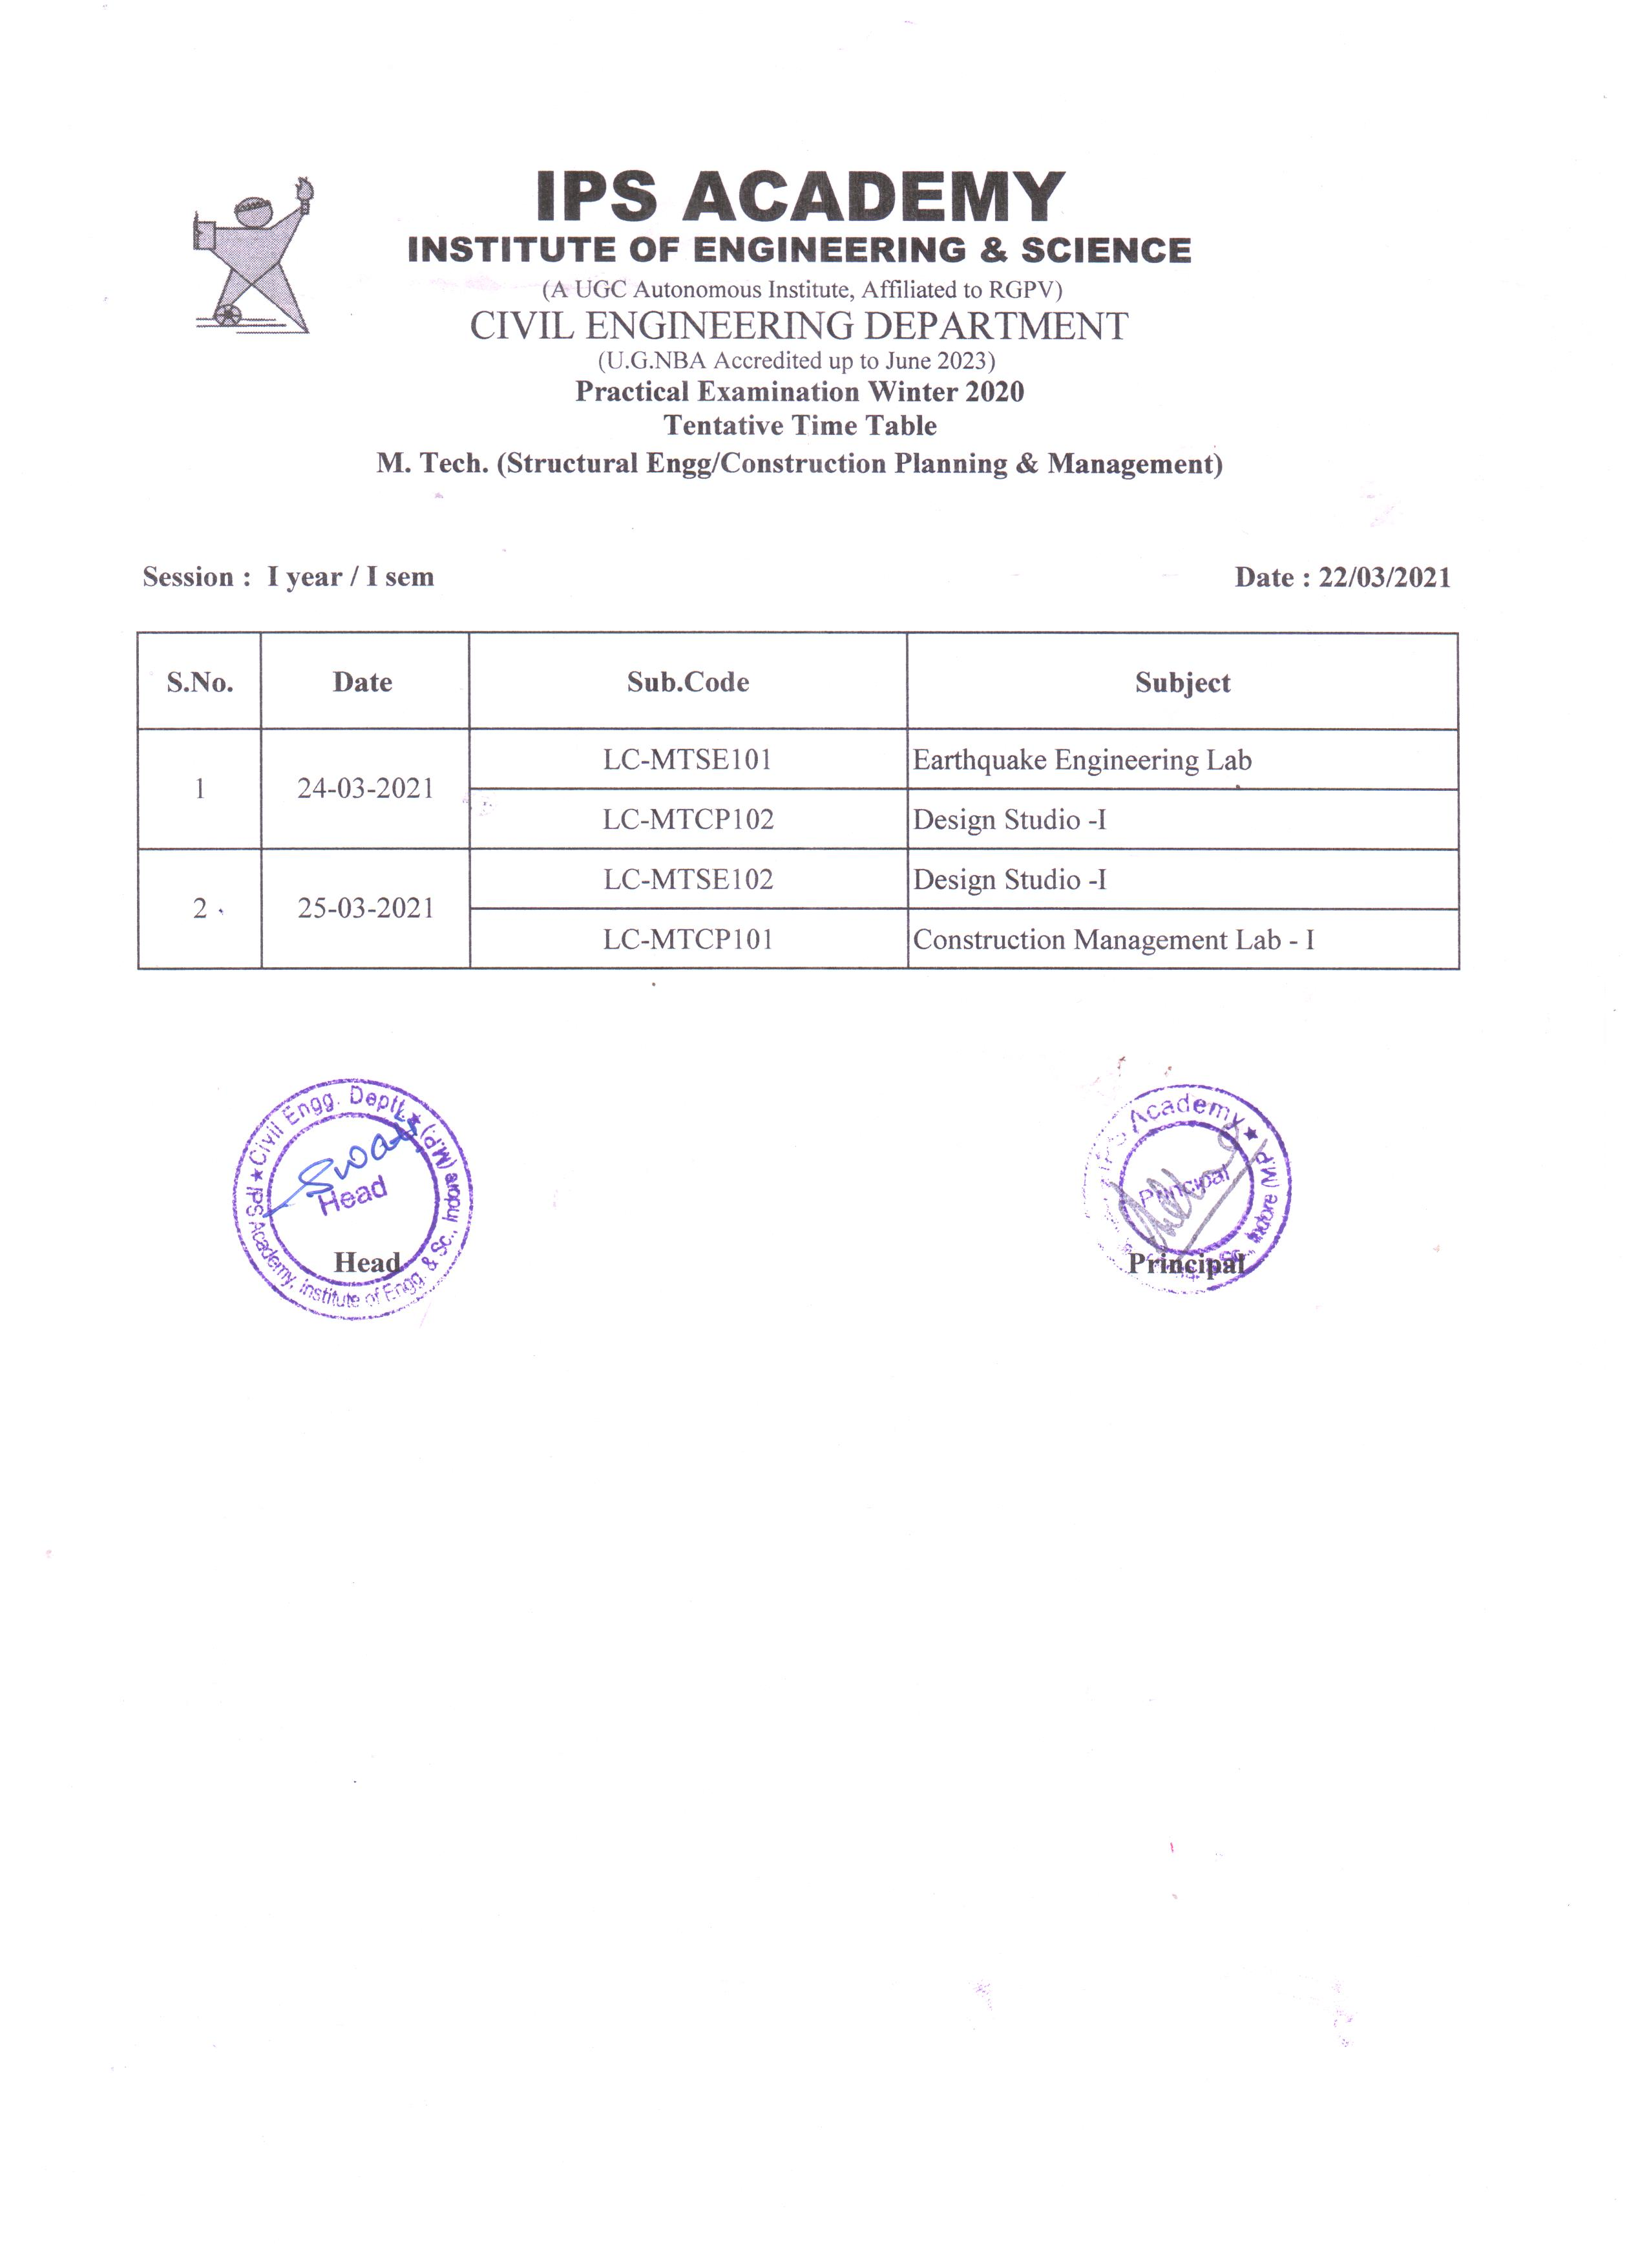 Practical Time-Table M.Tech CPM & Structural I year, I Sem vb 22.3.2021